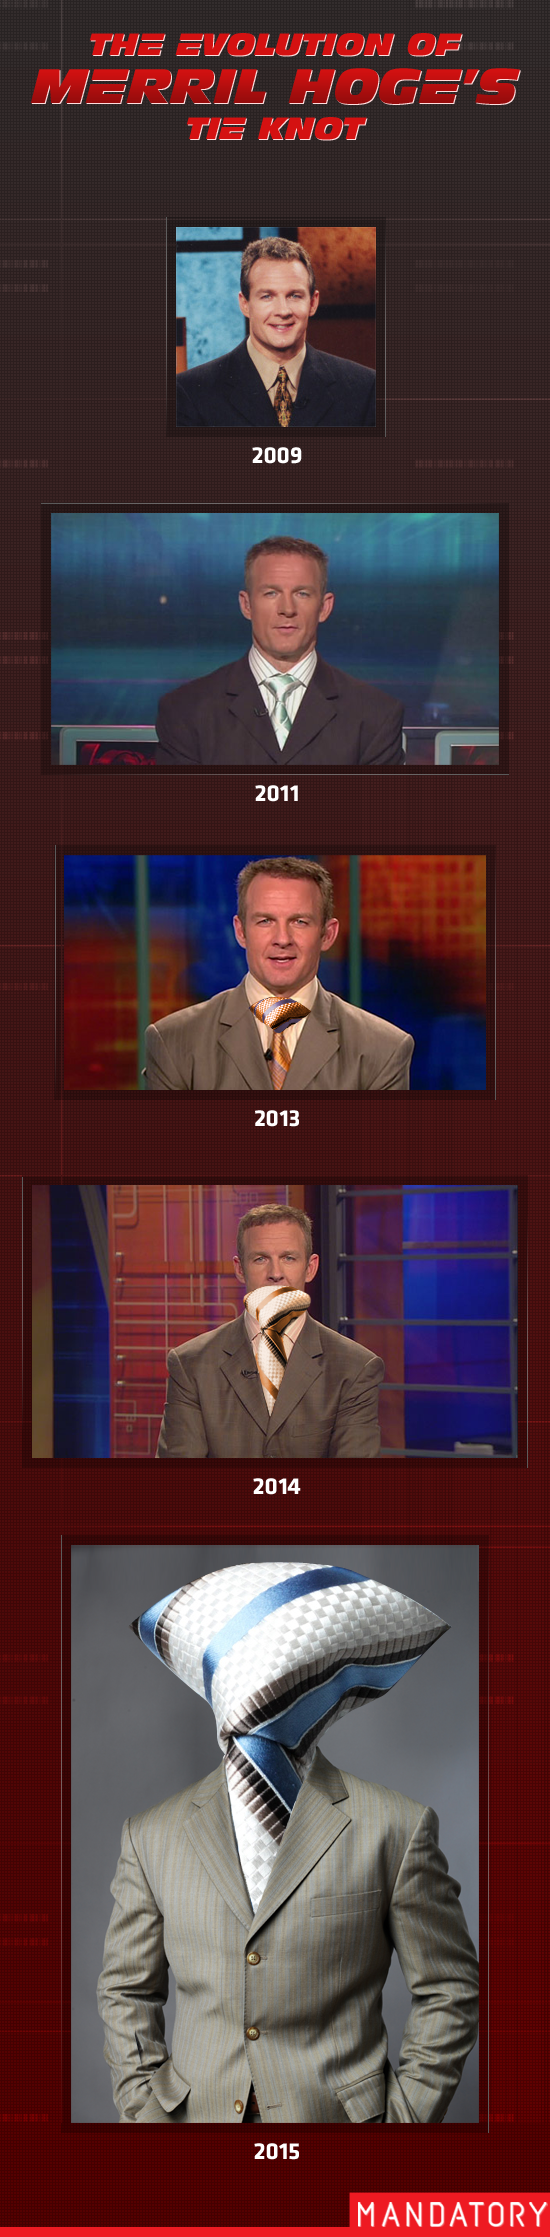 merril hoge, merril hoge tie knot, espn, nfl